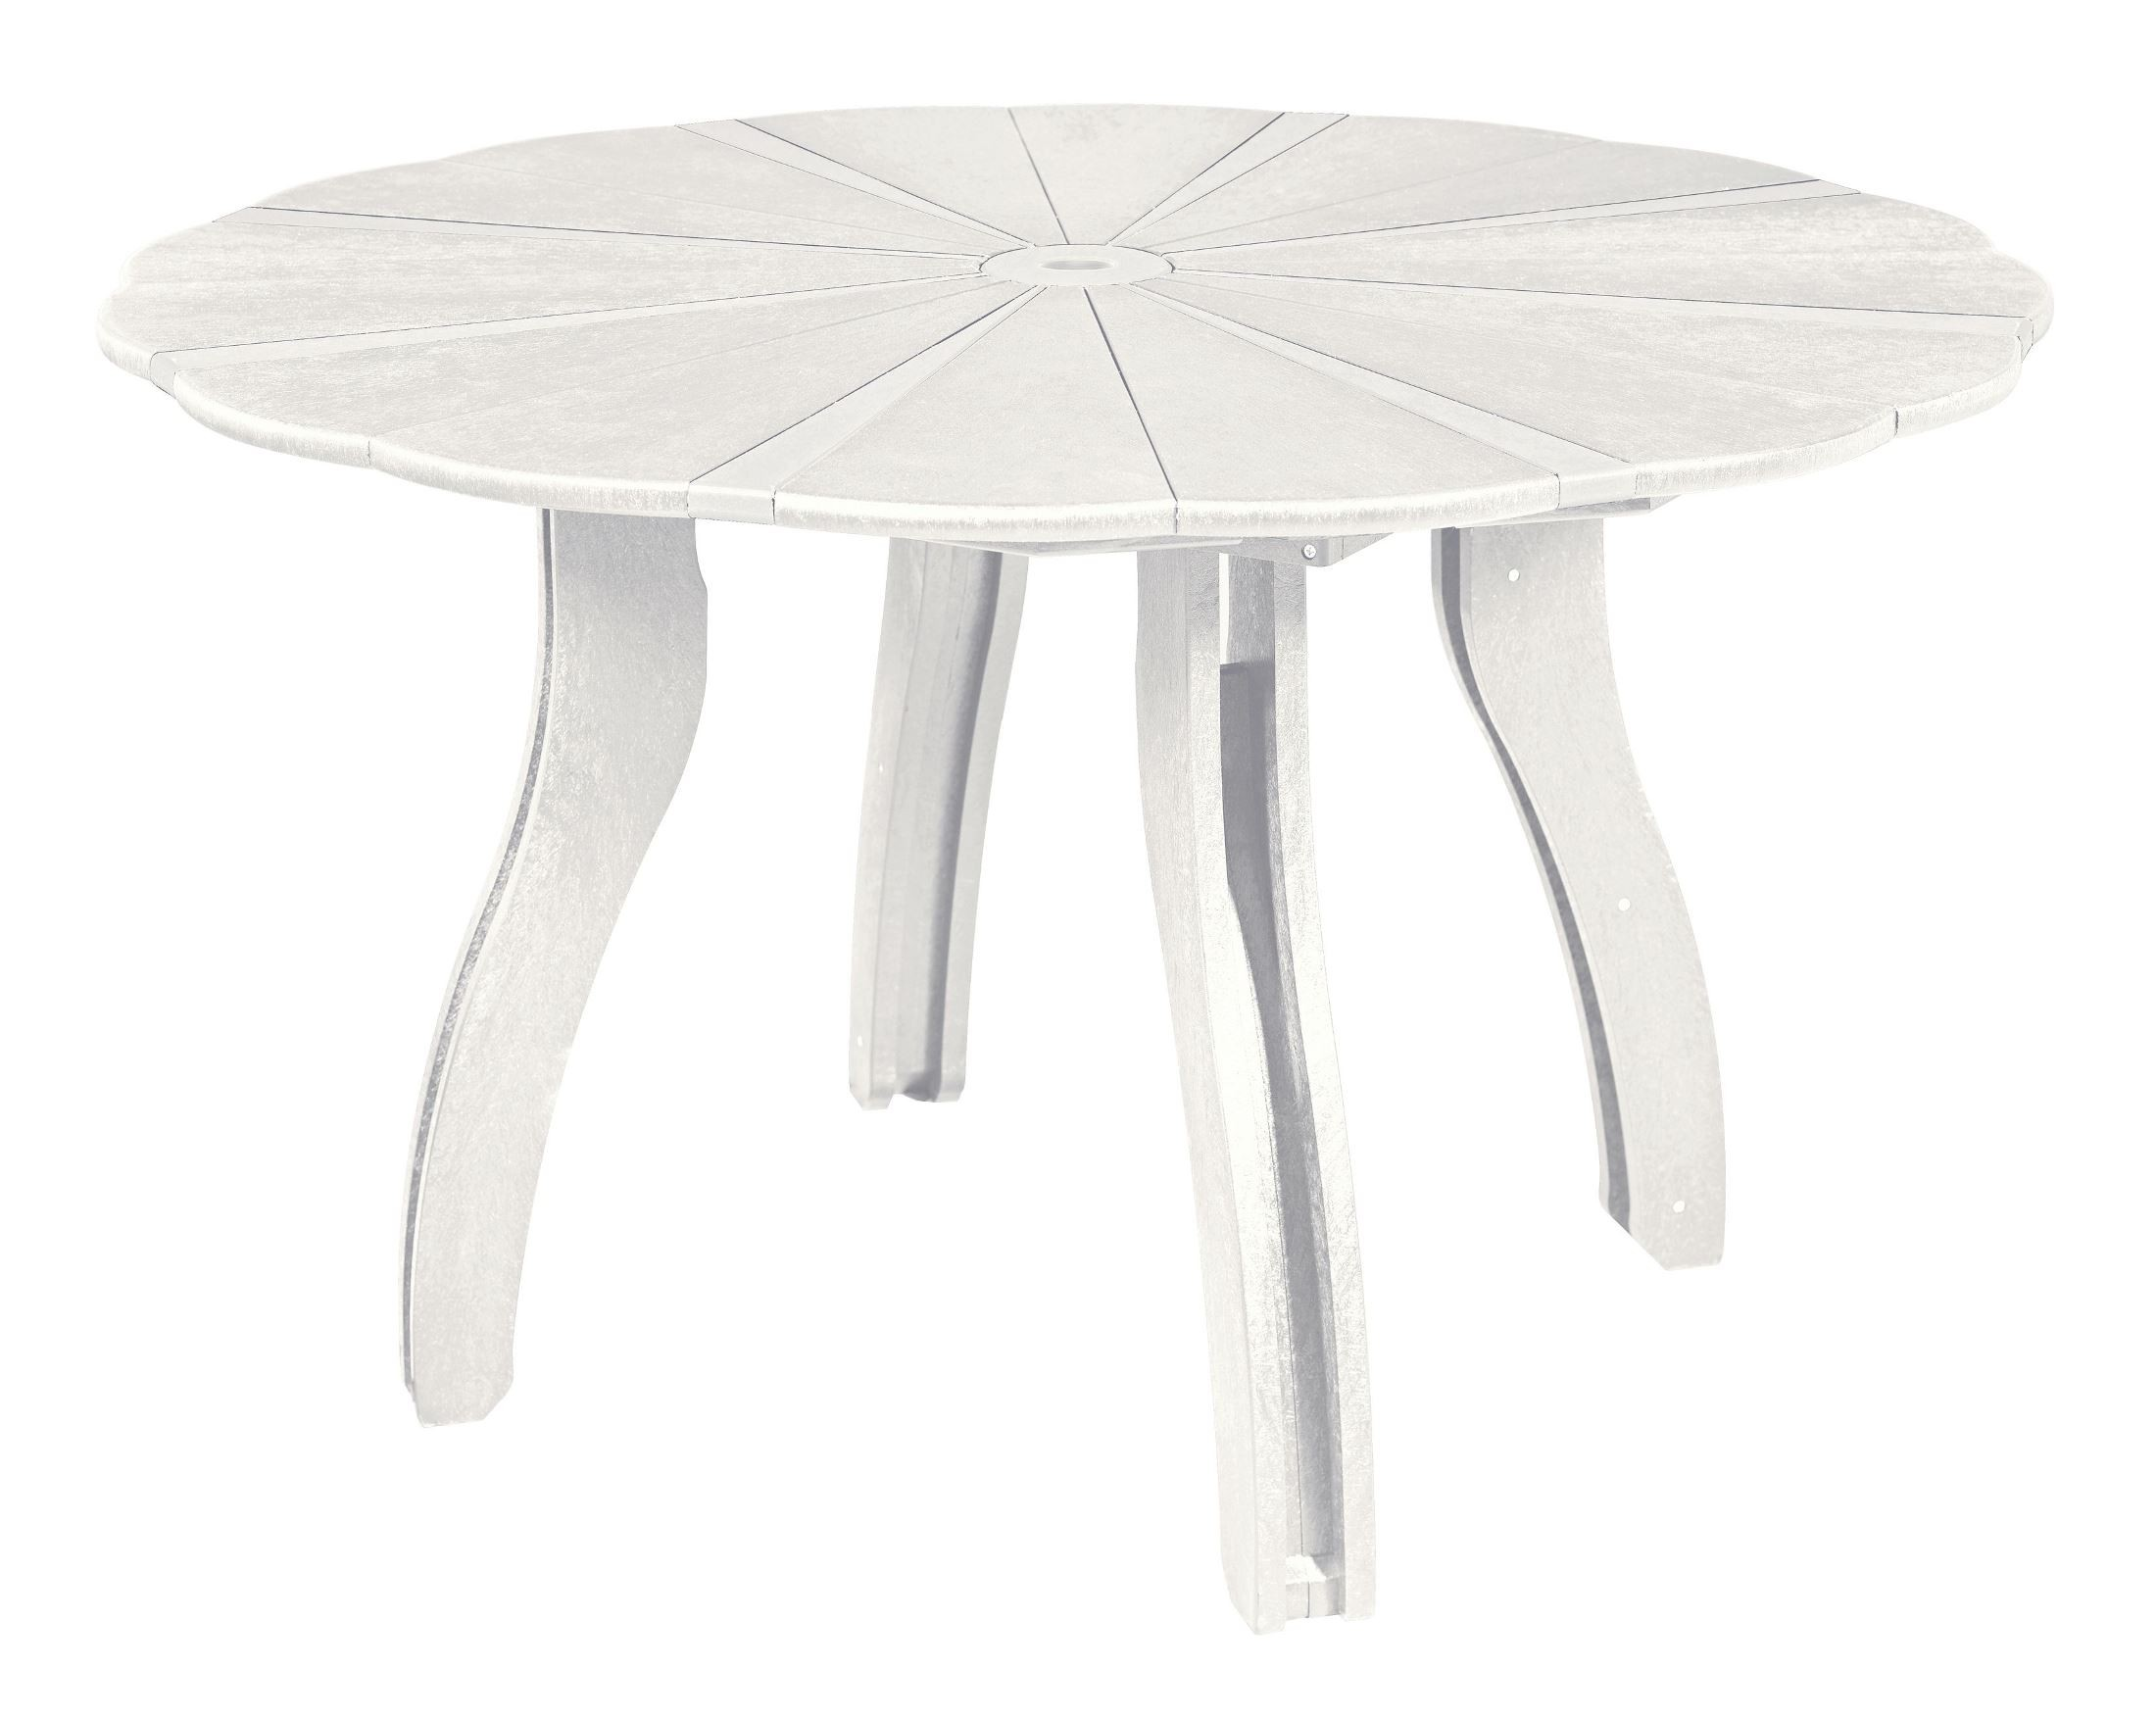 Generations white 52 scalloped round dining table from cr for Round dining table 52 inch